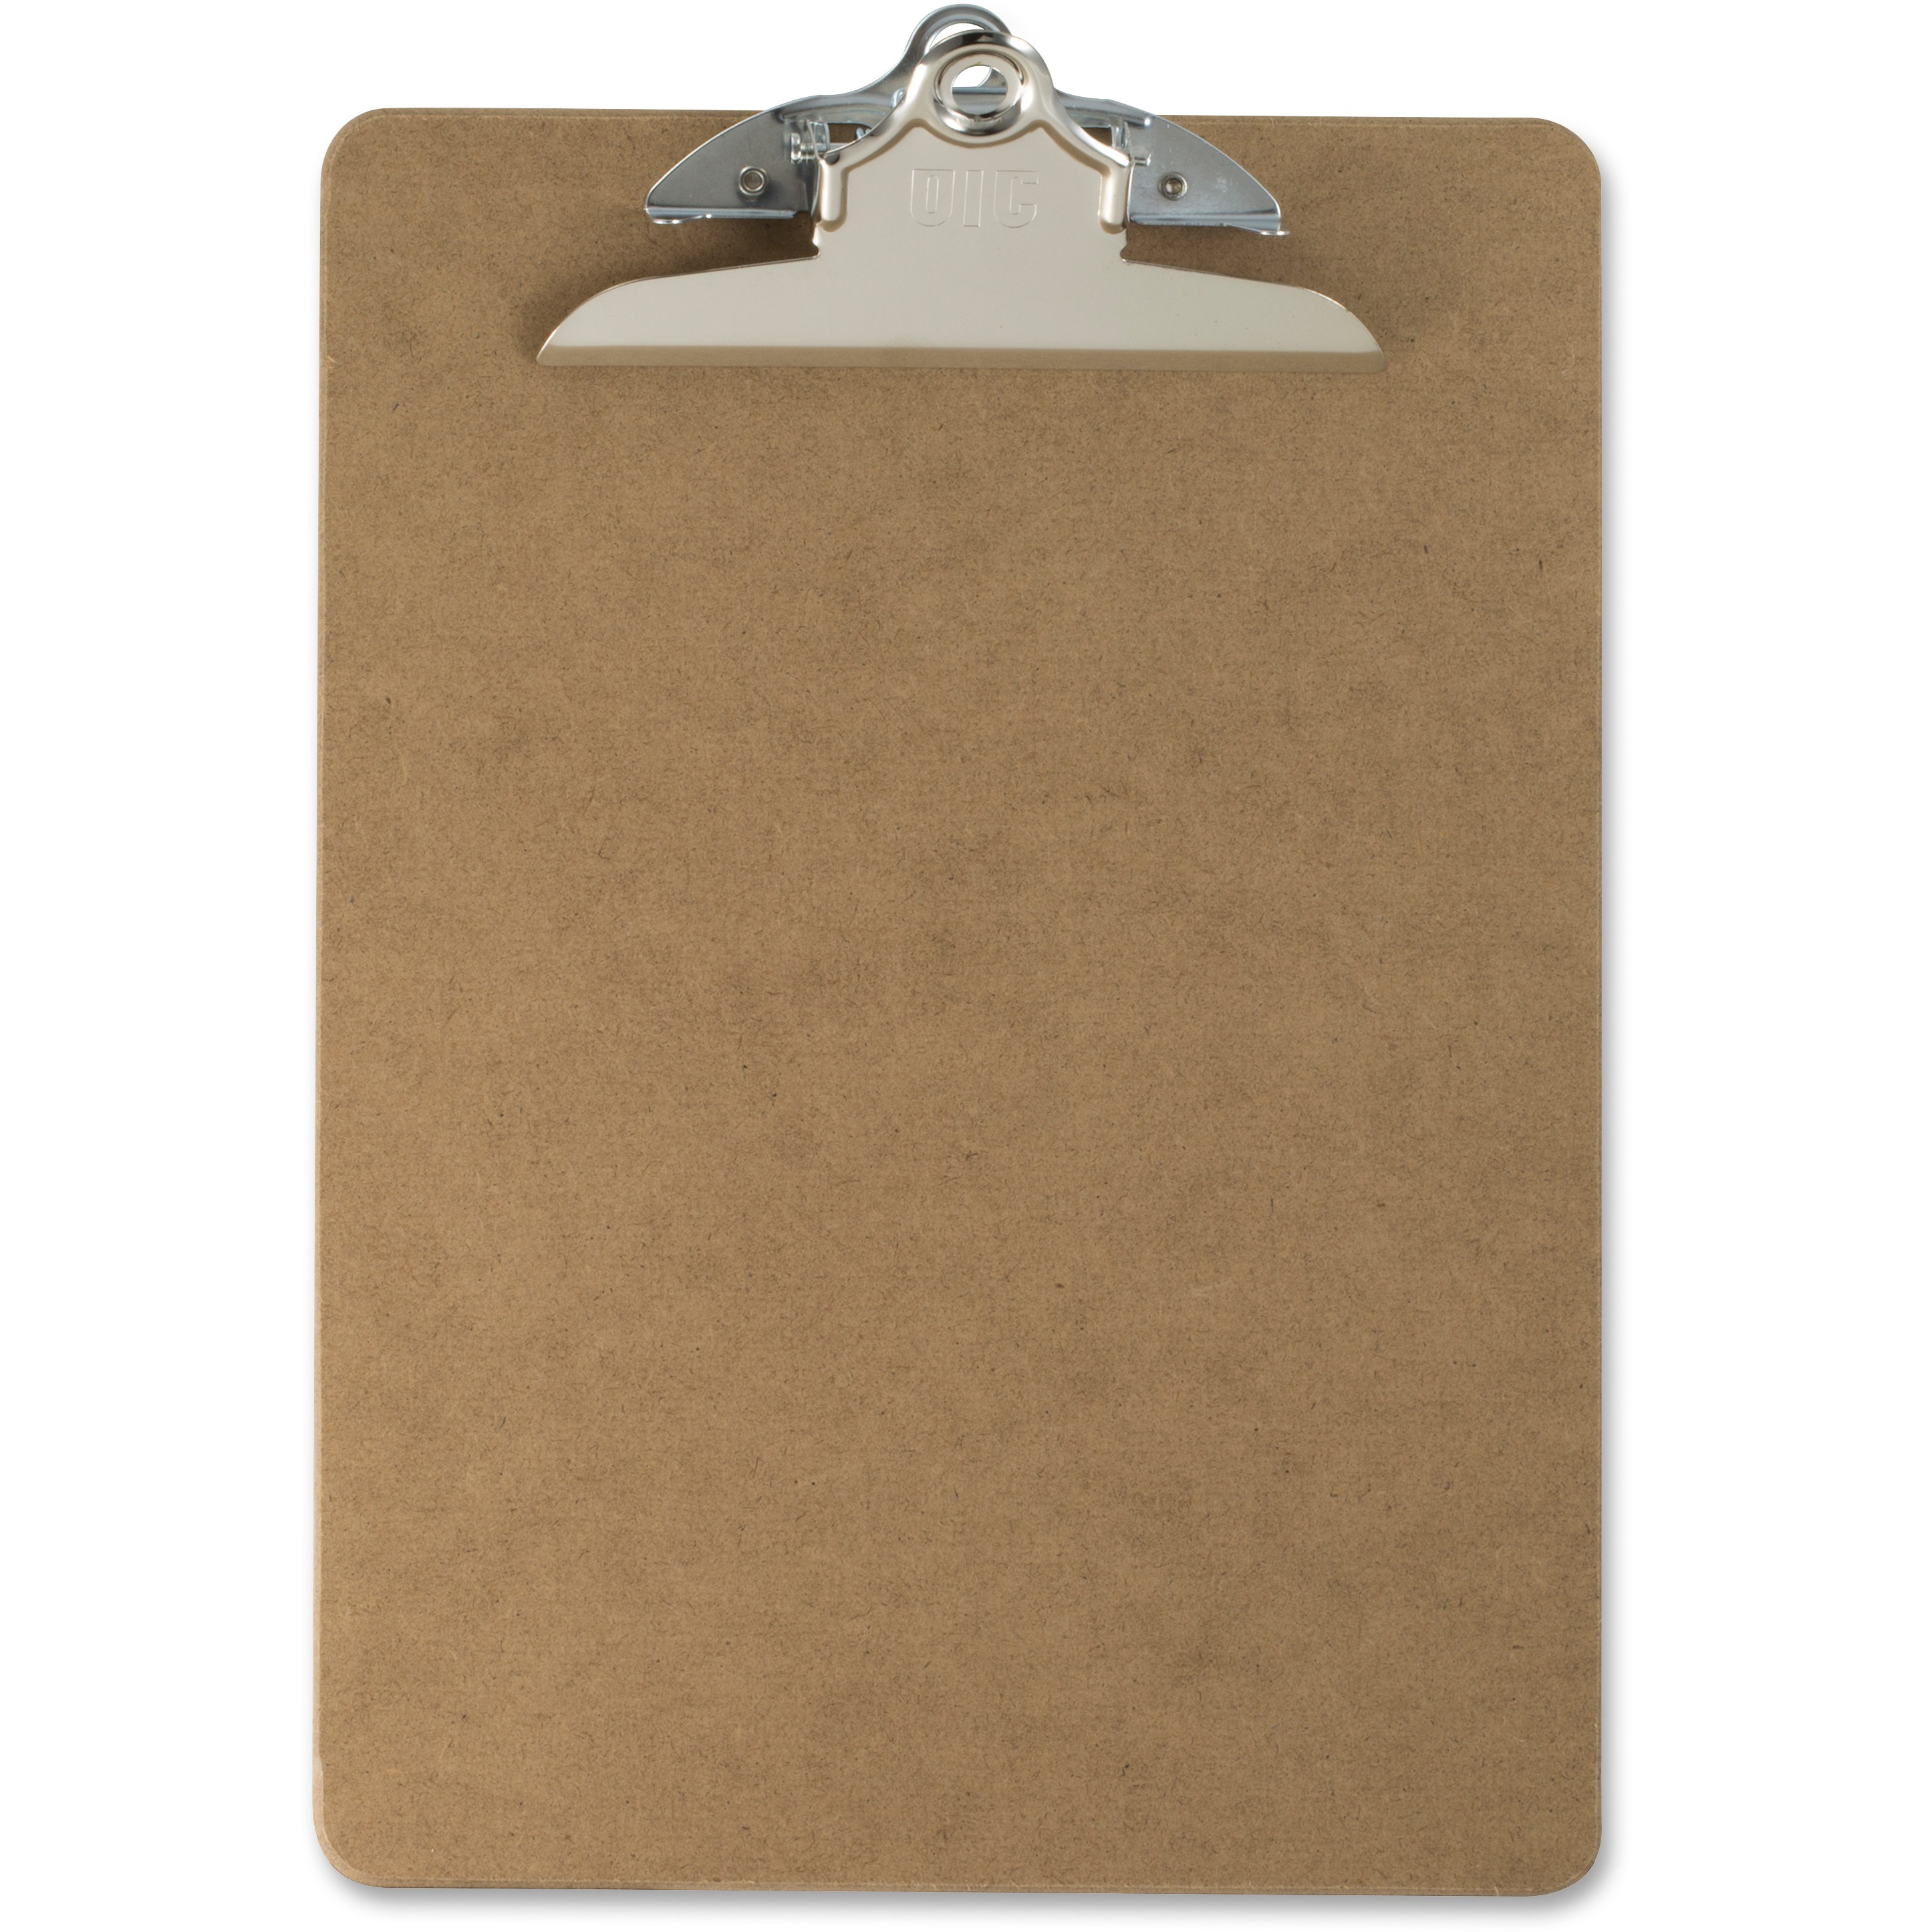 (4 Pack) OIC Hardboard Clipboards